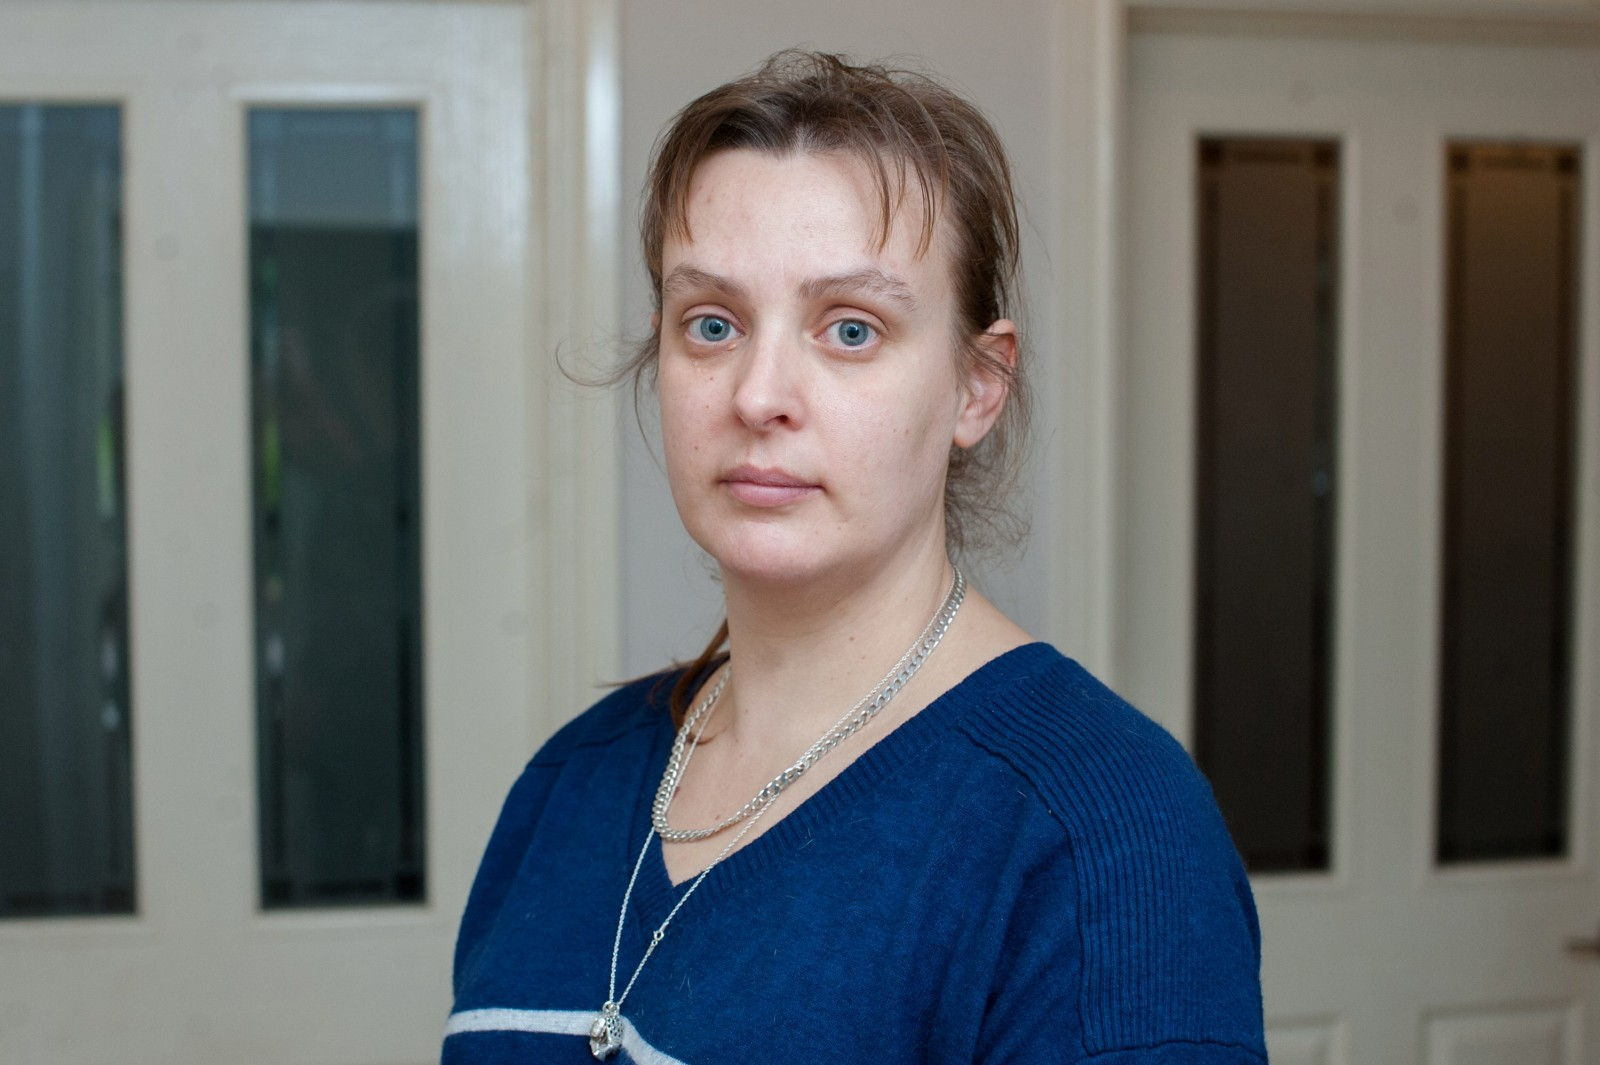 Liz Linham, 37, at home in Bristol.  February 13 2015. Linham's ex husband Adrian Linham, 43, has been sentenced for bigamy after running away to get married. See SWNS story SWRAT: A love rat bigamist jetted out to Mexico to marry his second wife on the same beach where he honeymooned with the first - and she only found out about it on FACEBOOK. Callous Adrian Linham, 43, secretly dated Hayley Totterdell for three years while his loyal wife of seven years Liz, 37, thought their marriage was running smoothly. He frequently told Liz he was going to Bangor, south Wales, to work for weeks at a time - but was actually living just 16 miles away with Hayley. Then he secretly flew out to a paradise beach to wed Hayley in front of her family and friends - who were all blissfully unaware he was already married.